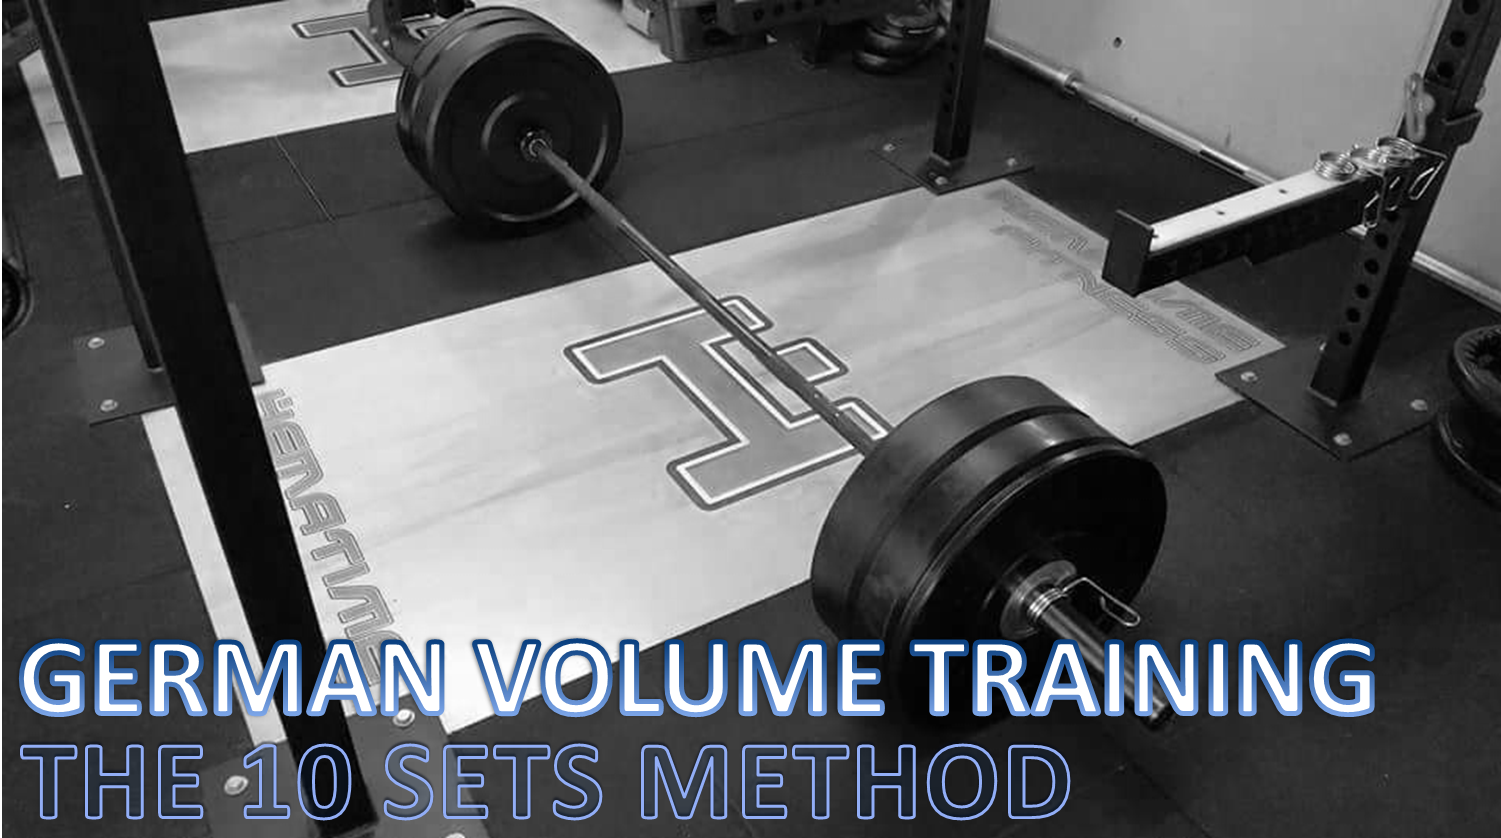 German volume training - Hematime Fitness